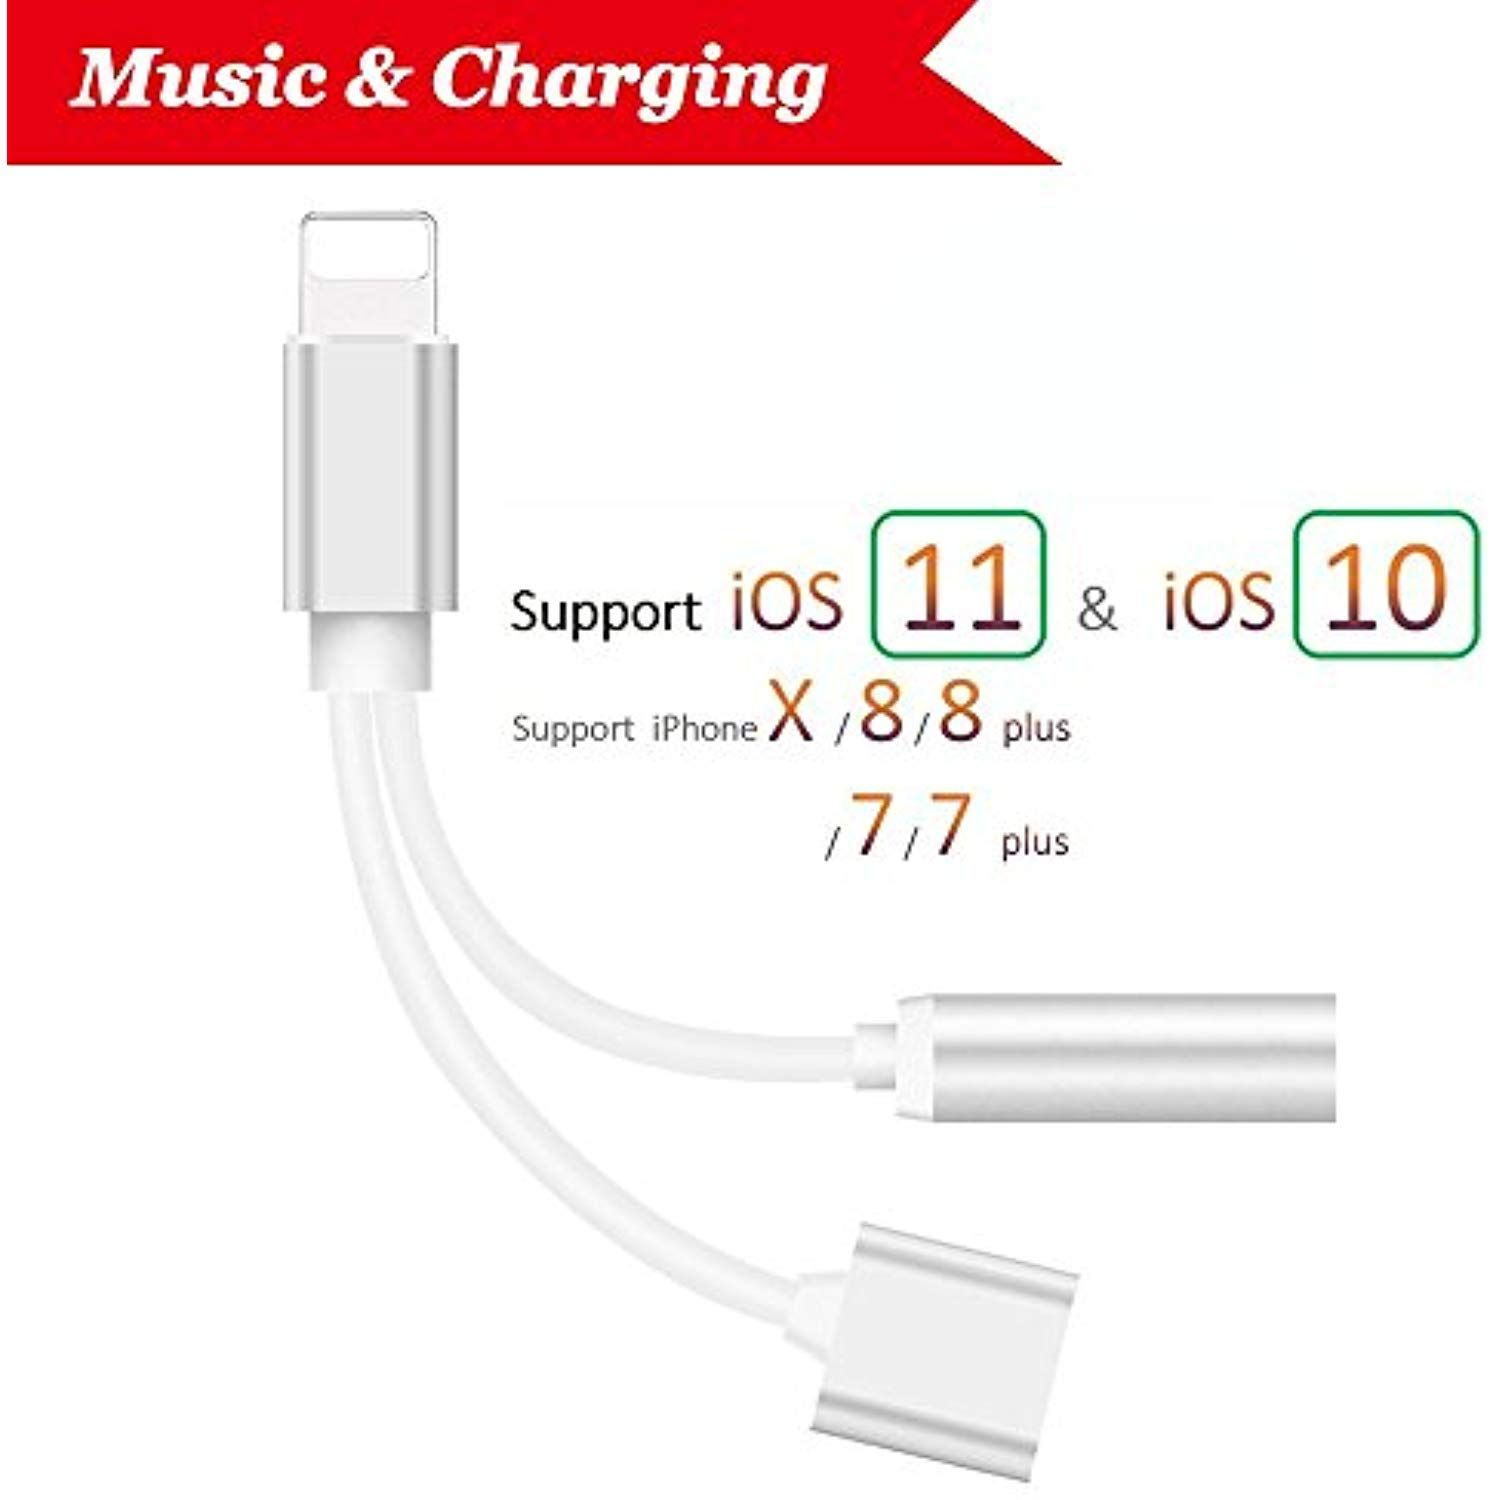 441045db2c0 Lightning jack Adapter and Charger,Headphones Adapter and Charging  Lightning to 3.5mm Headphone Jack